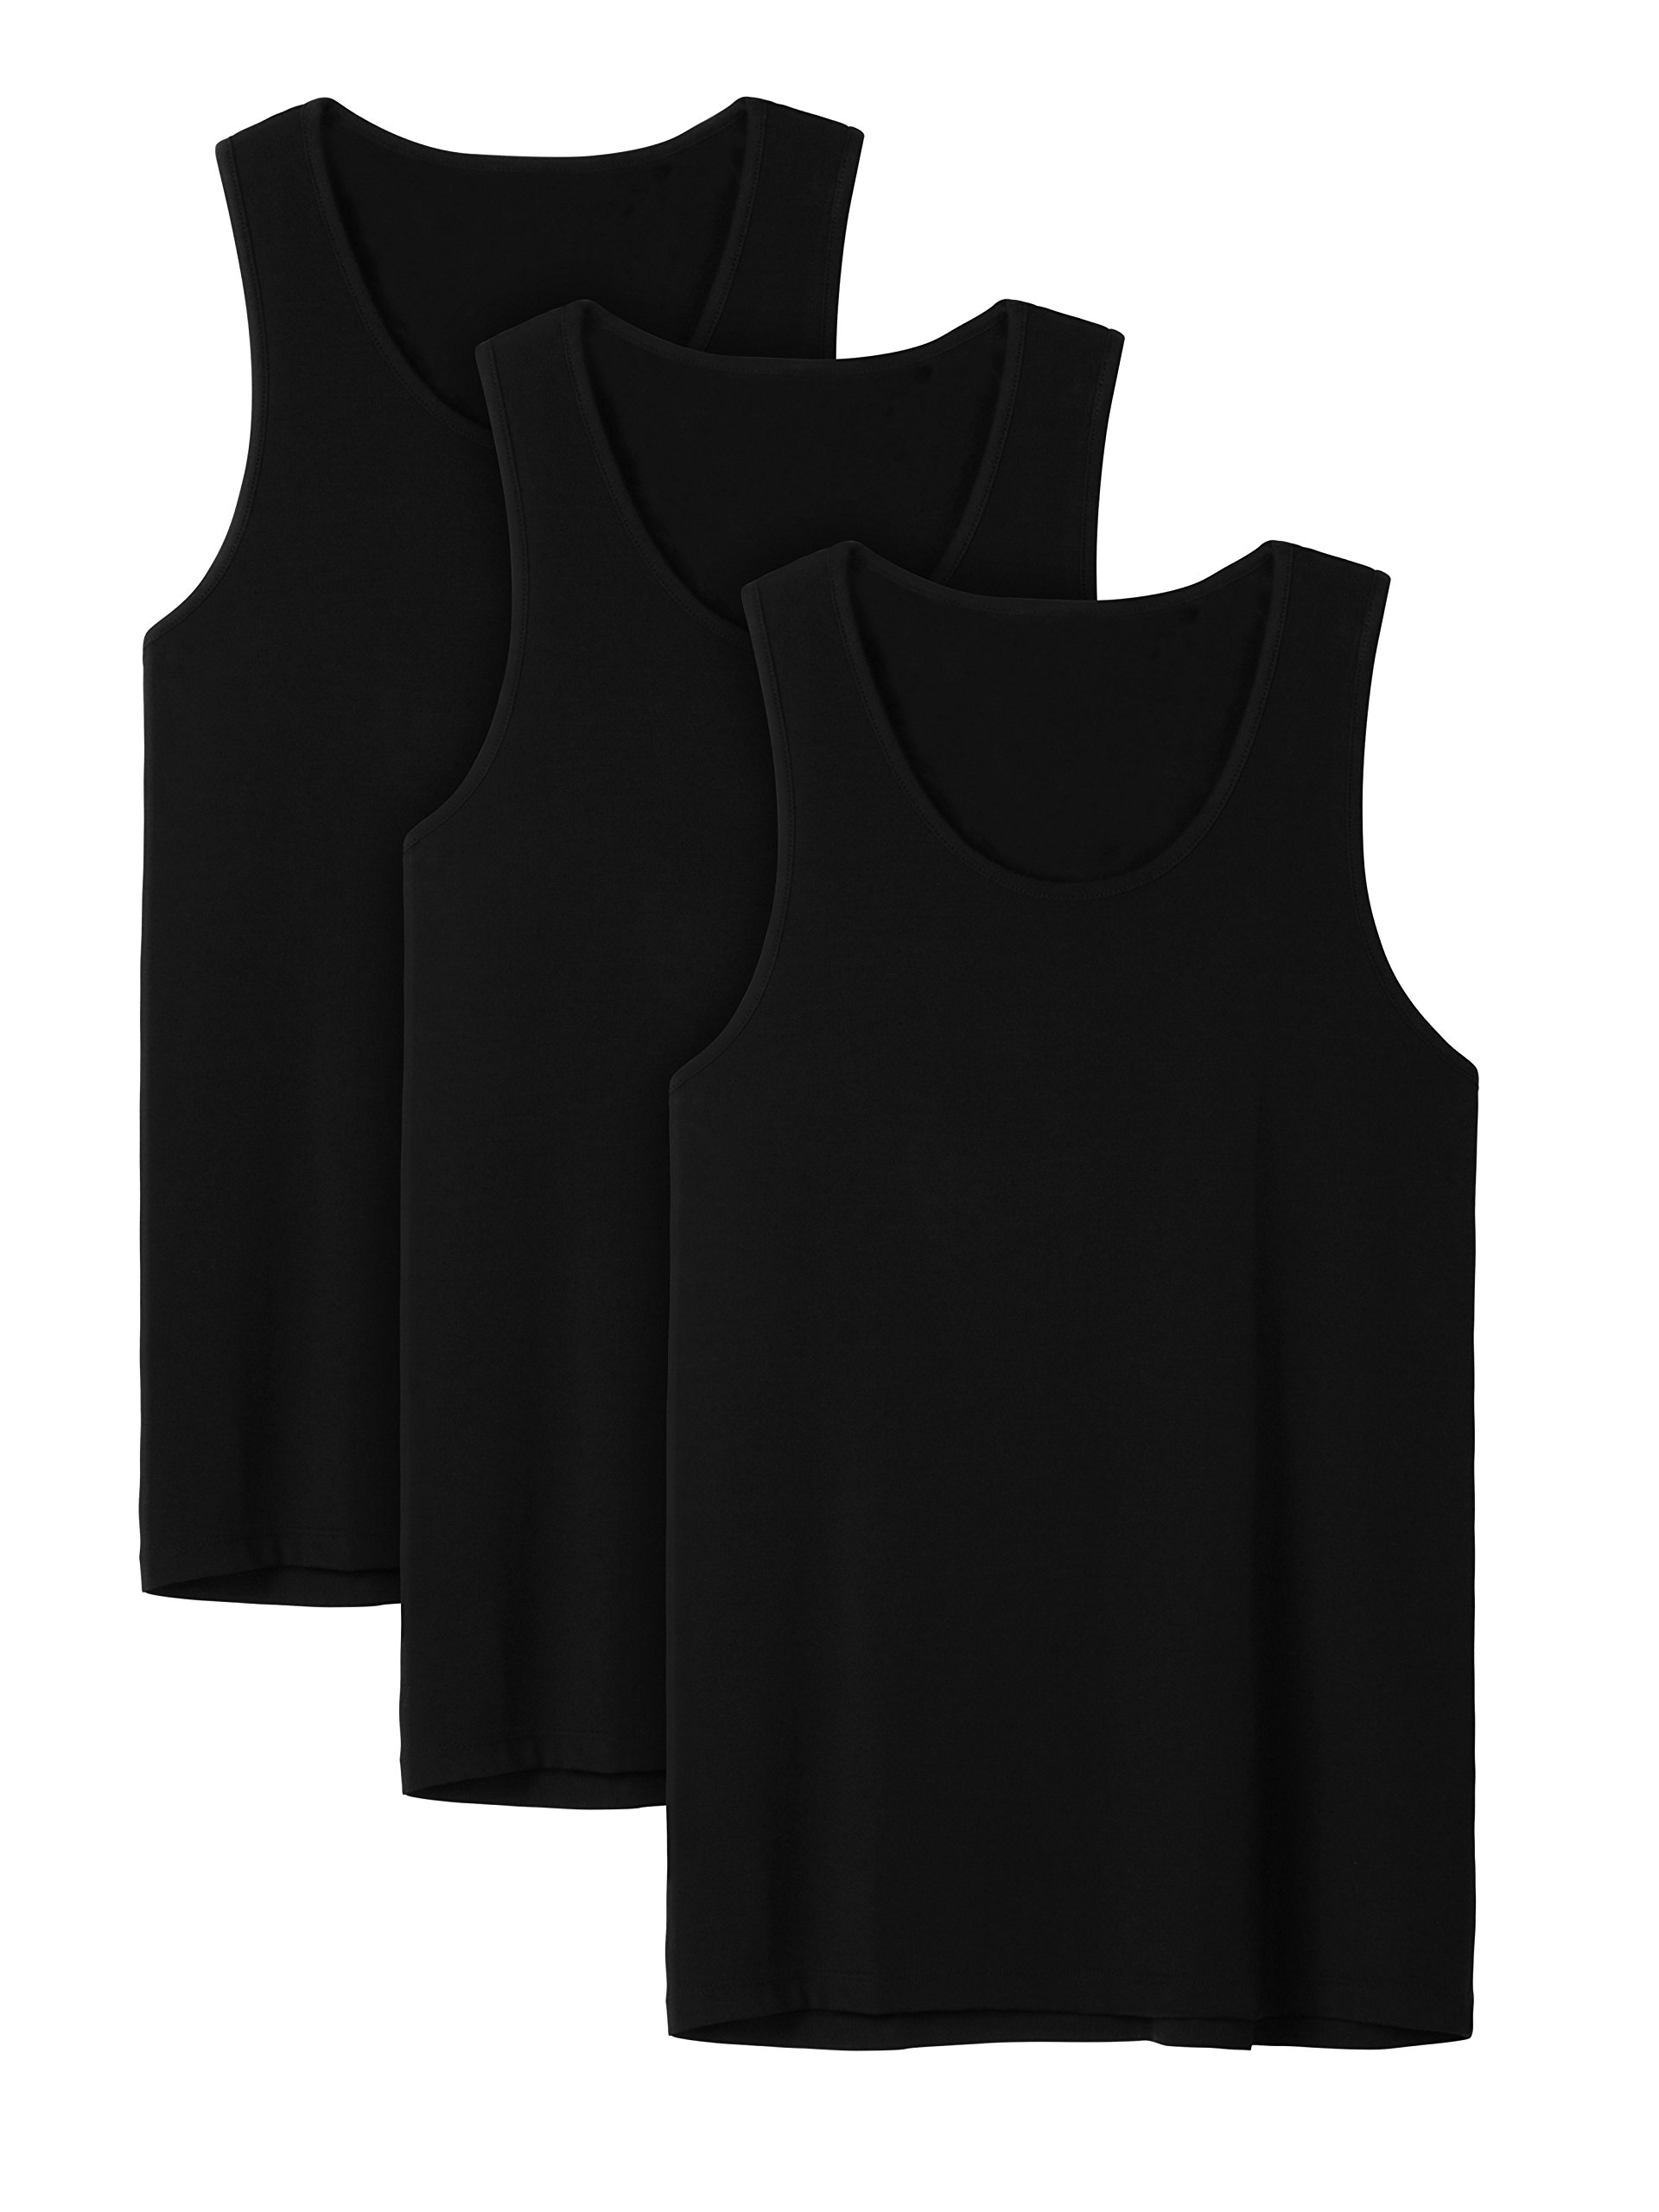 David Archy Men's 3 Pack Bamboo Rayon Undershirts Crew Neck Tank Tops(Black,S)